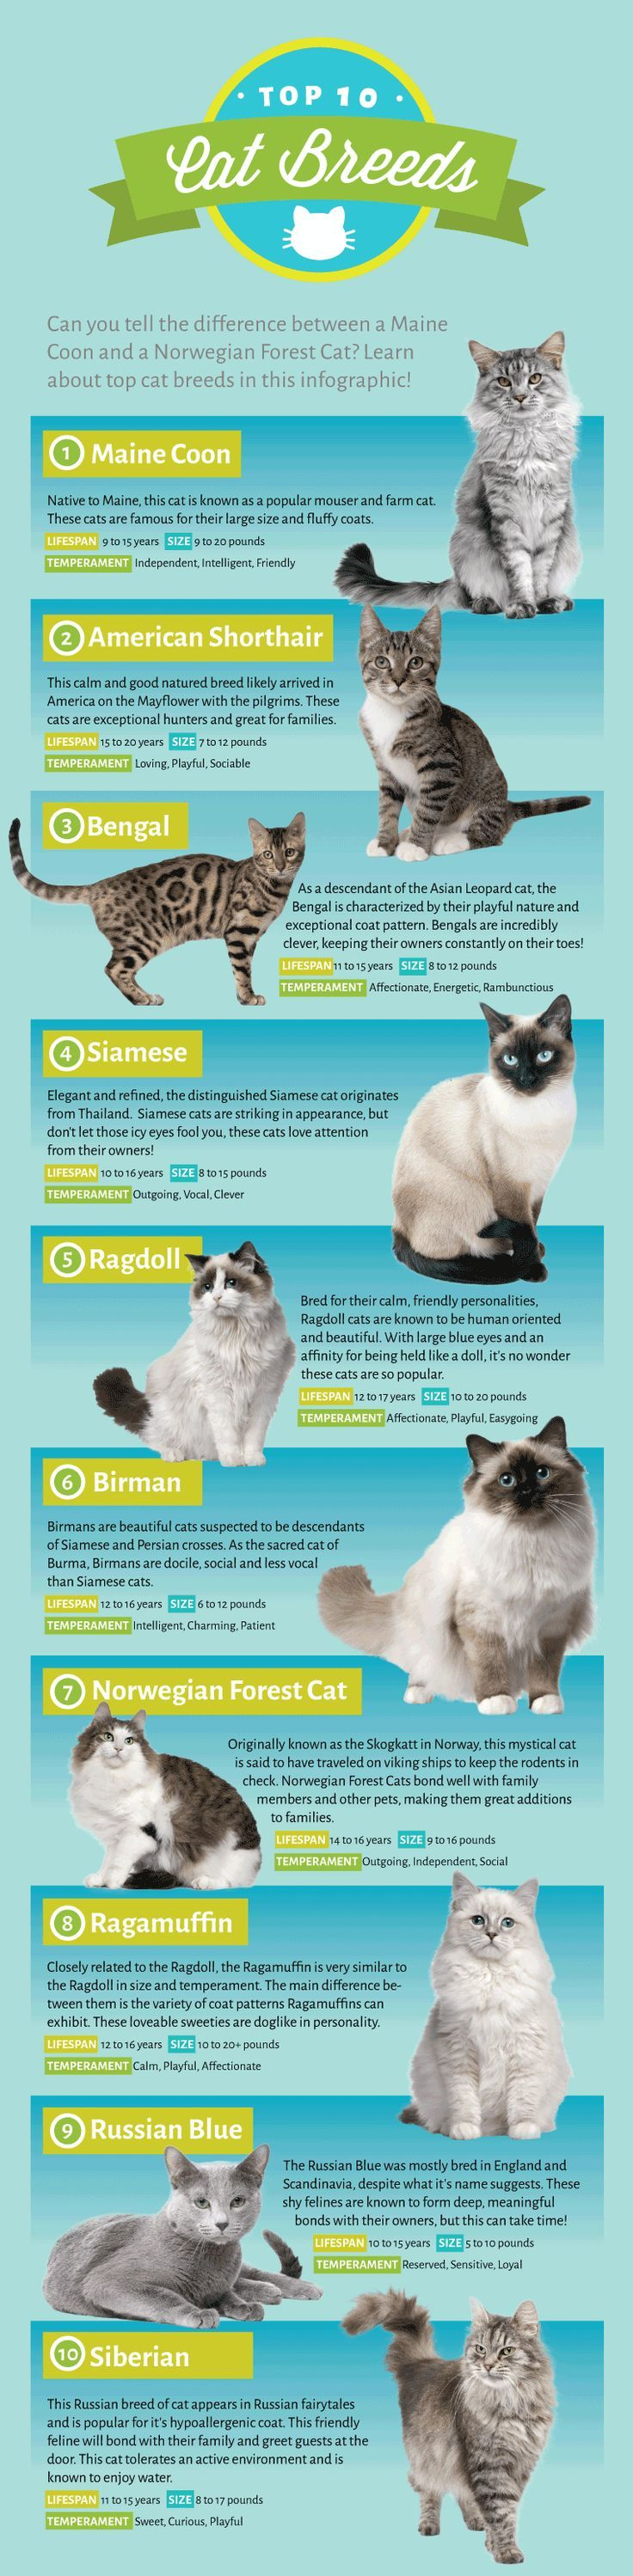 The top 10 cat breeds as voted by EntirelyPets fans and interesting facts about them - infographic.